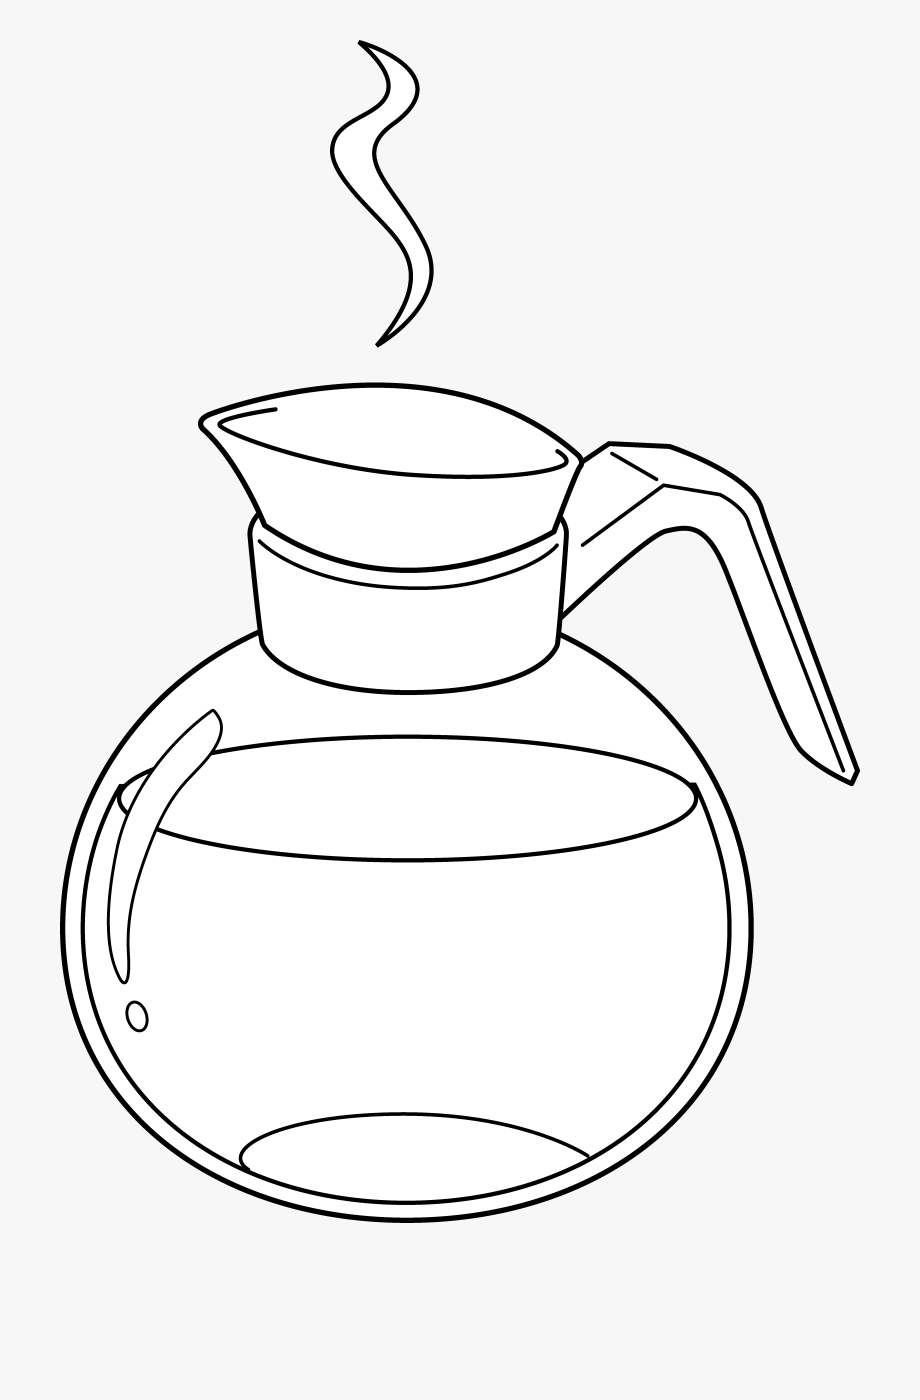 Coffe Drawing Clip Art Line.